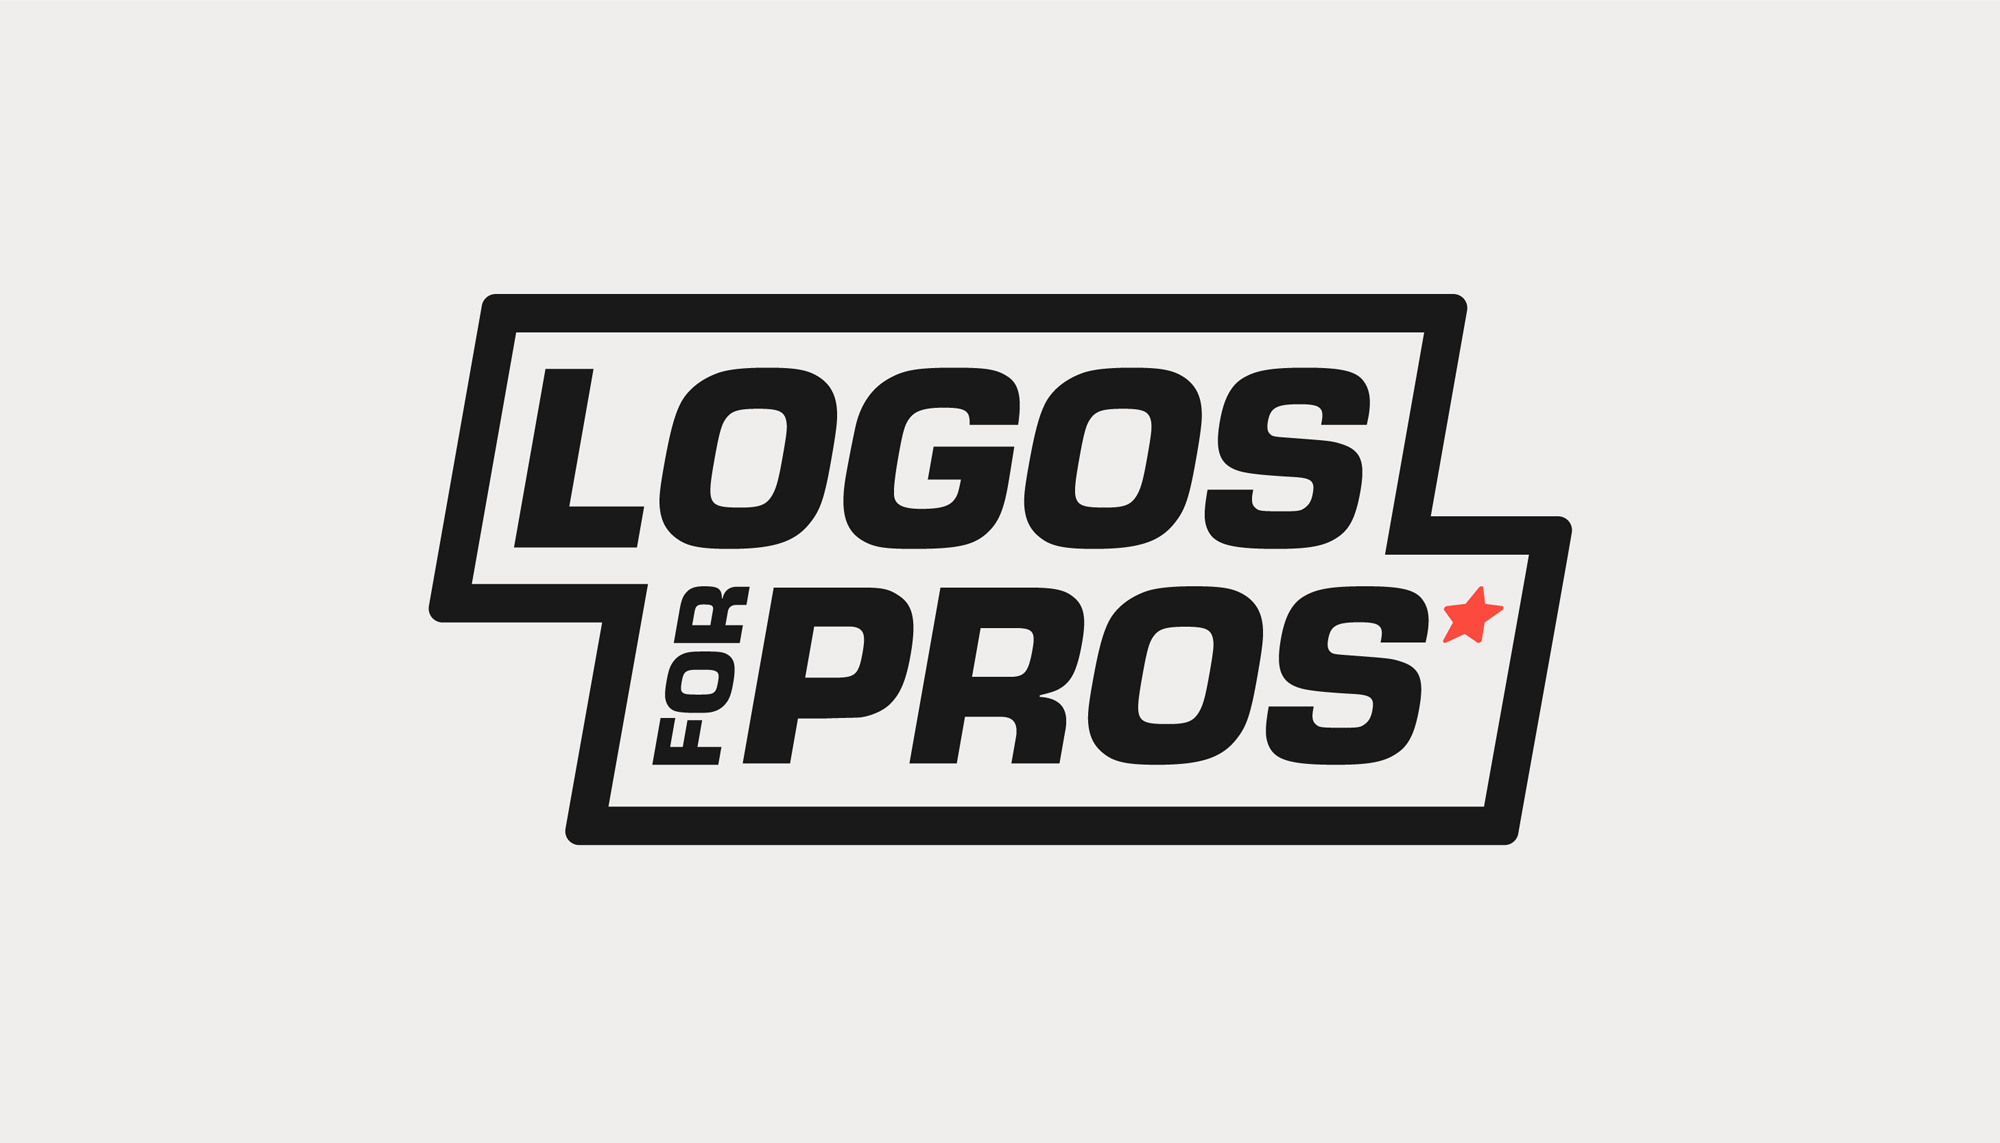 Logos for Pros - vertical lockup